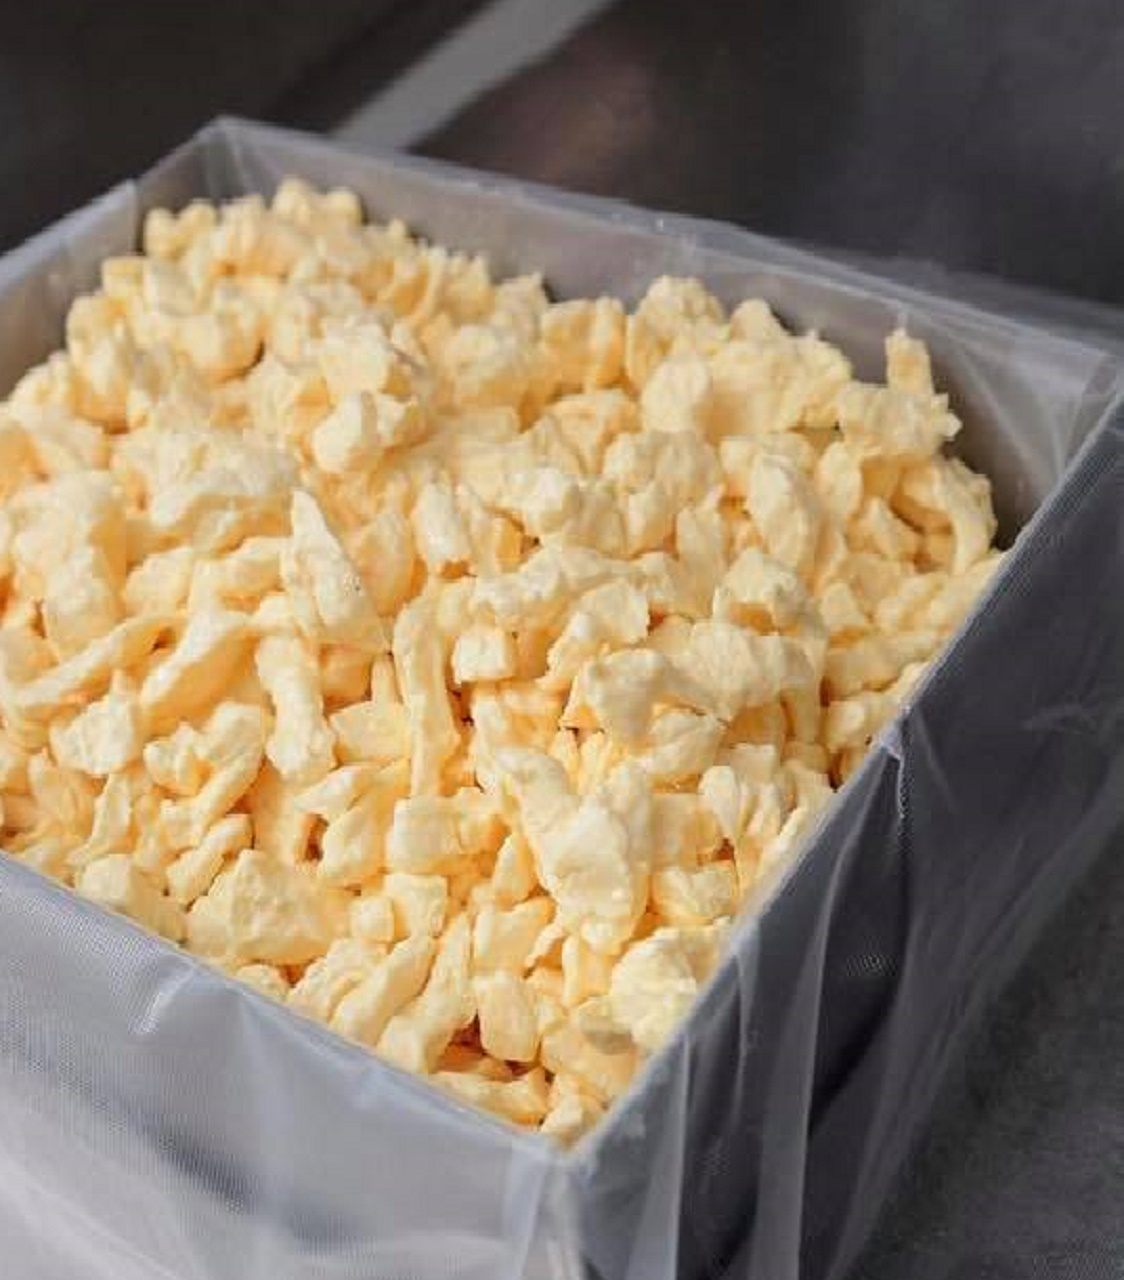 Say Cheese Grenville Business Uses Surplus Milk To Make Cheese